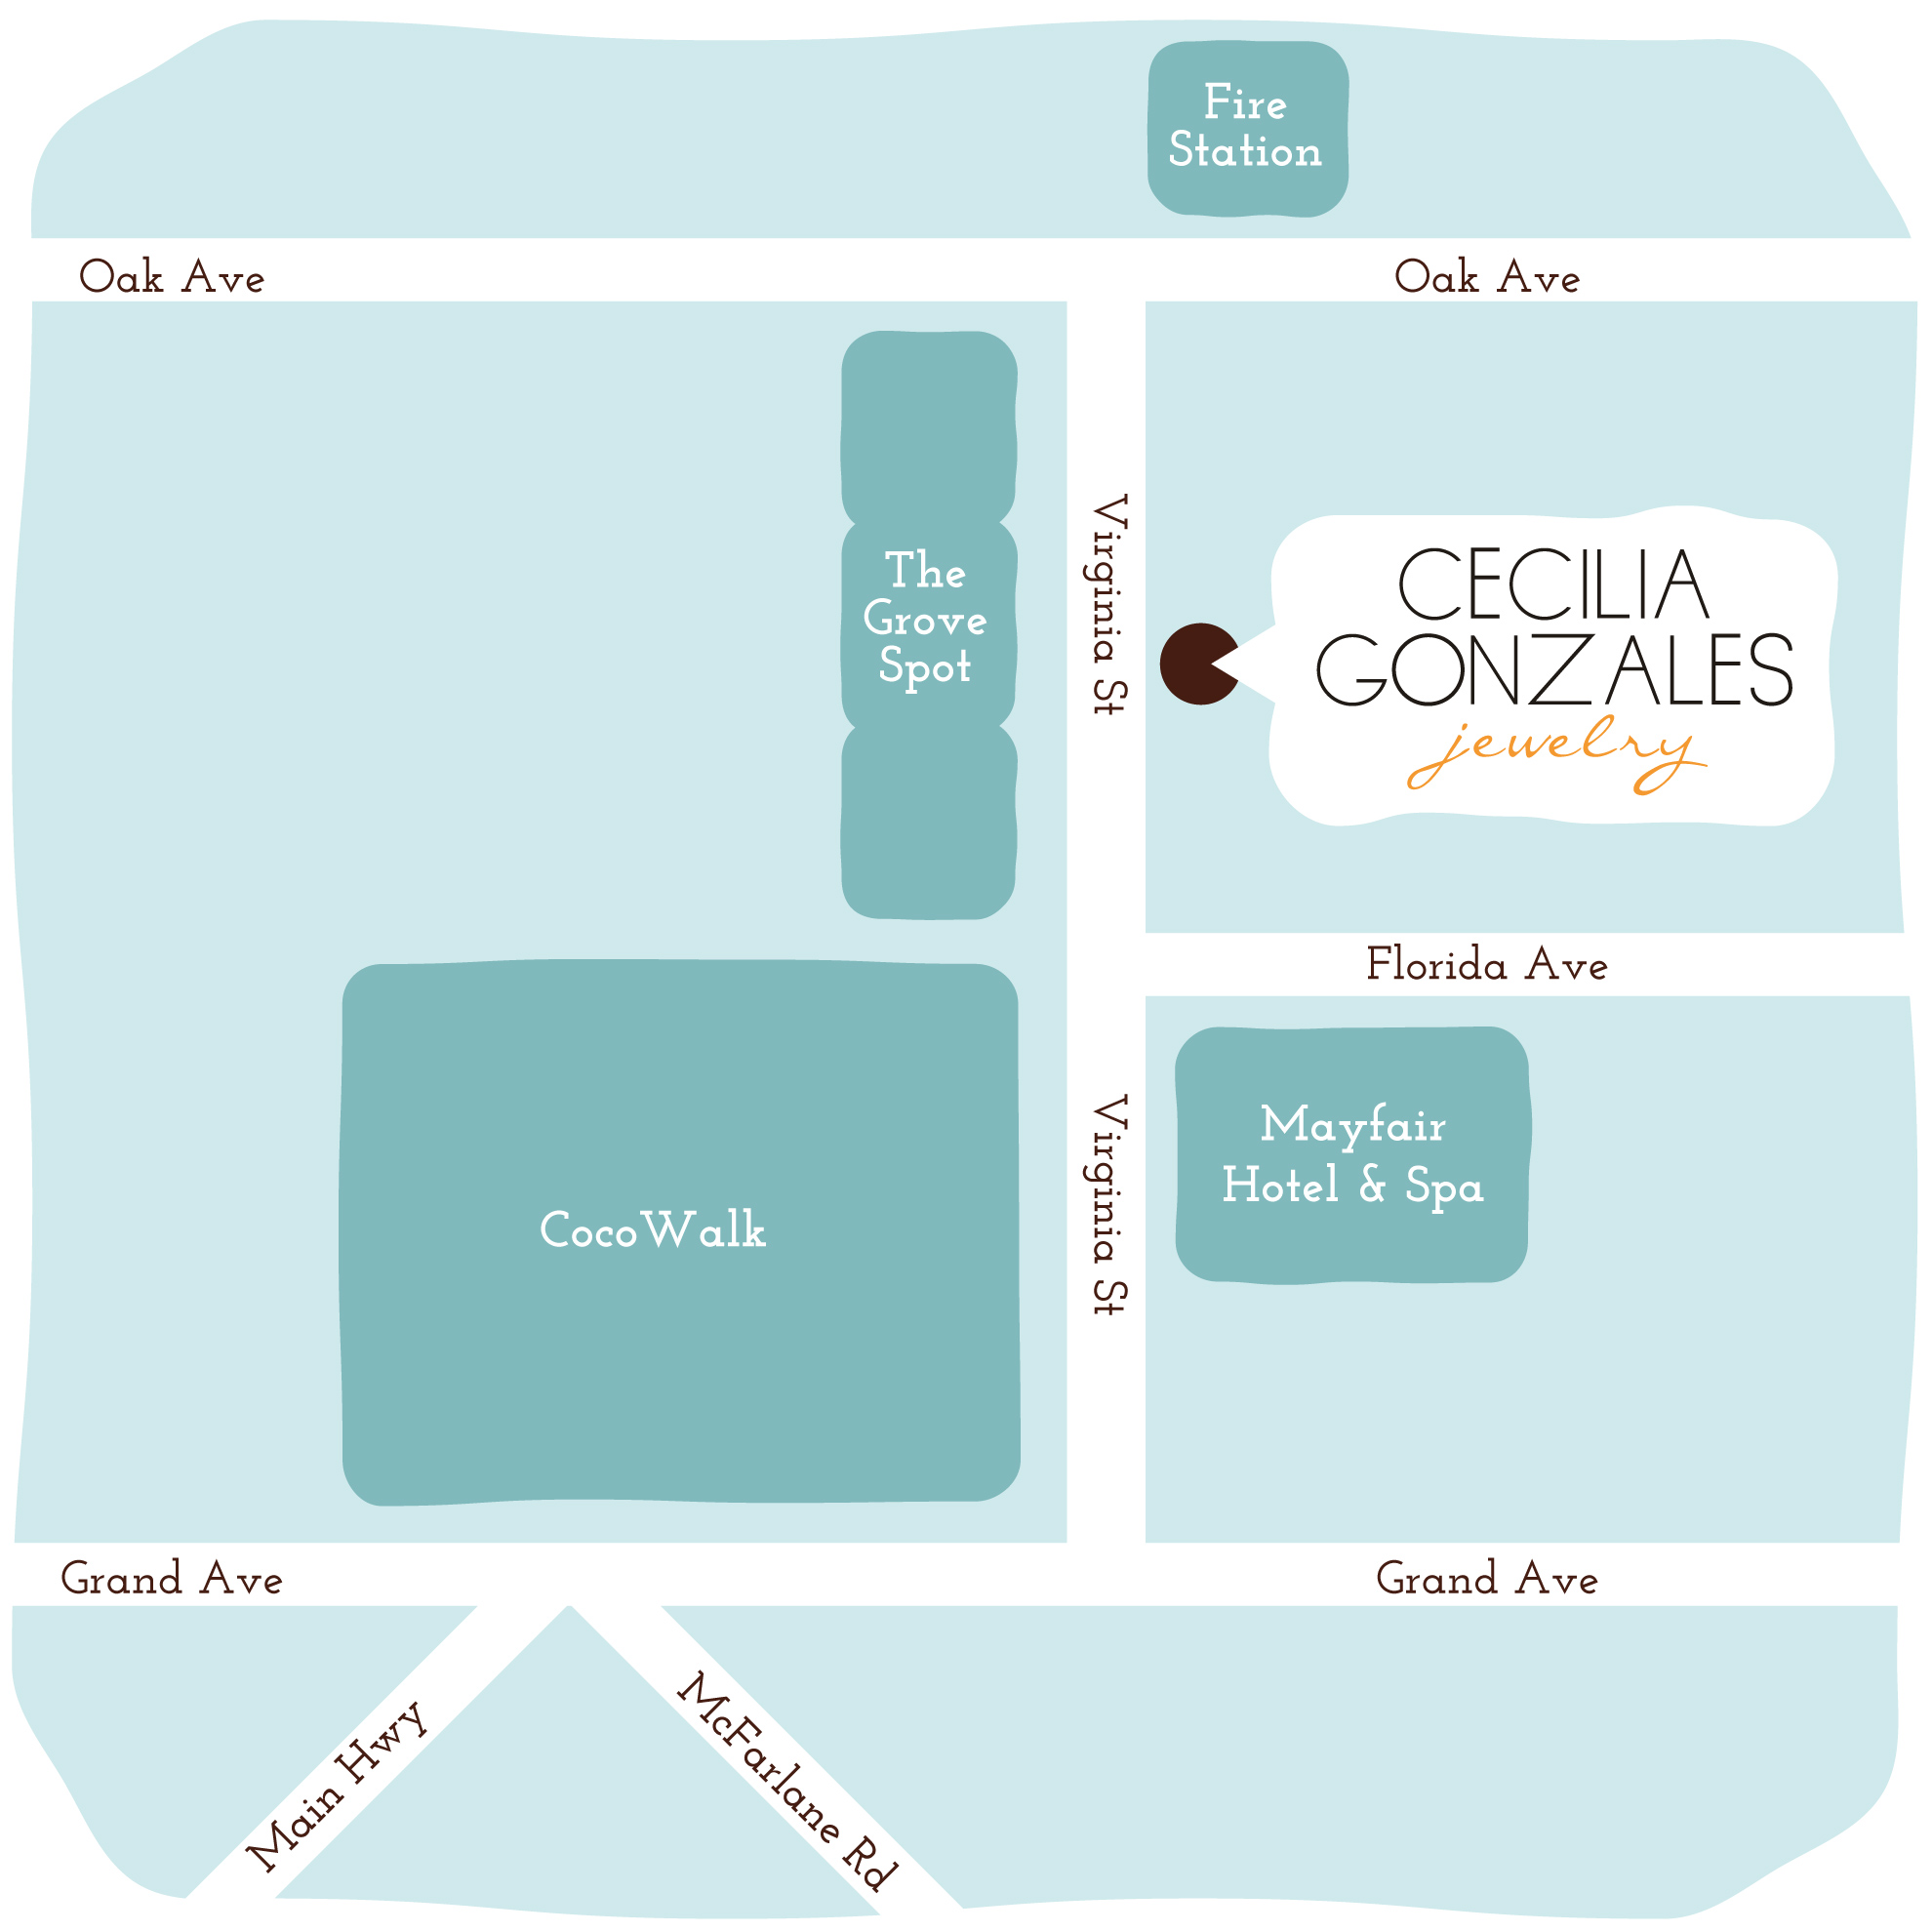 Cecilia Gonzales Jewelry location in Miami, FL